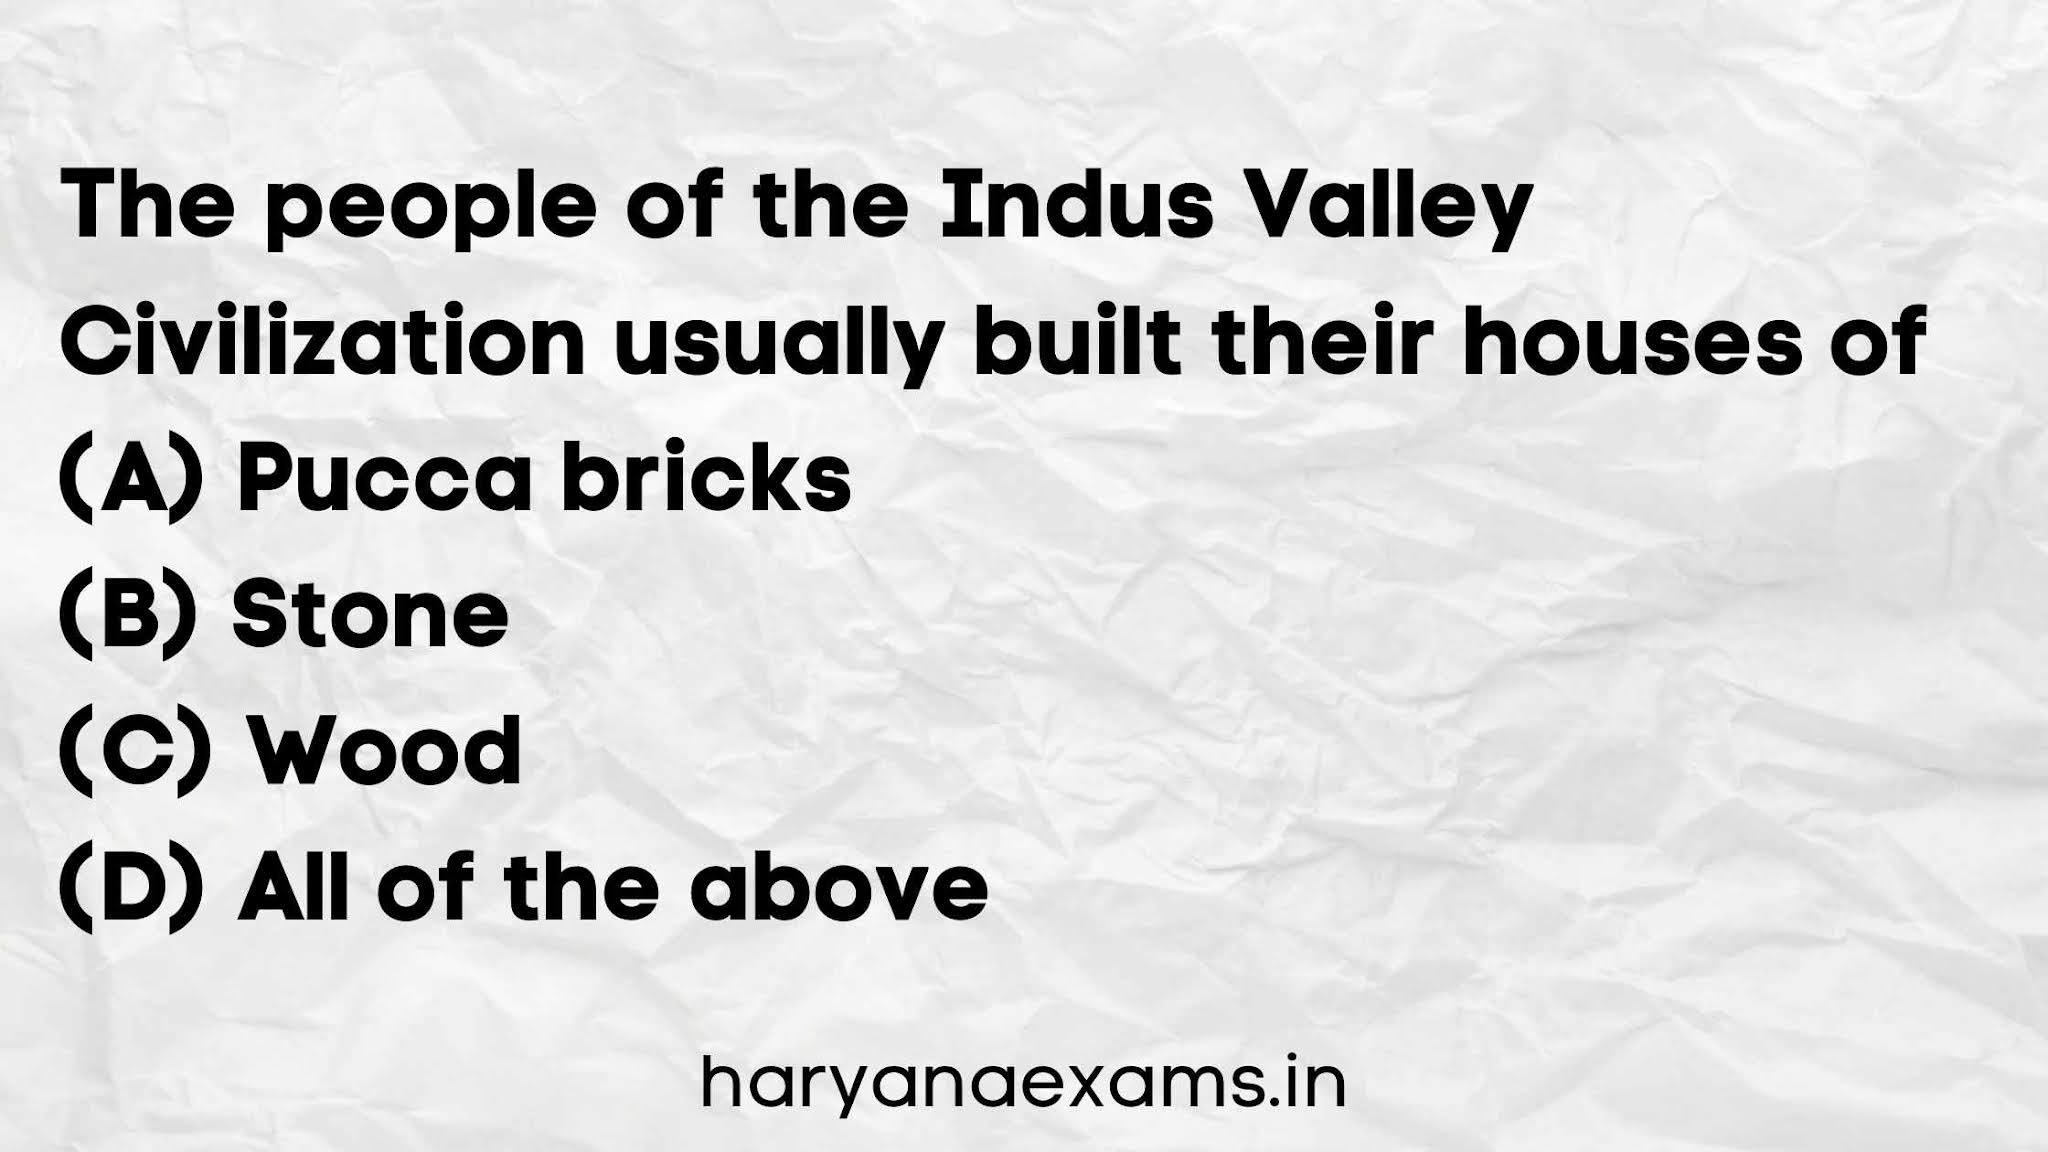 The people of the Indus Valley Civilization usually built their houses of   (A) Pucca bricks   (B) Stone   (C) Wood   (D) All of the above